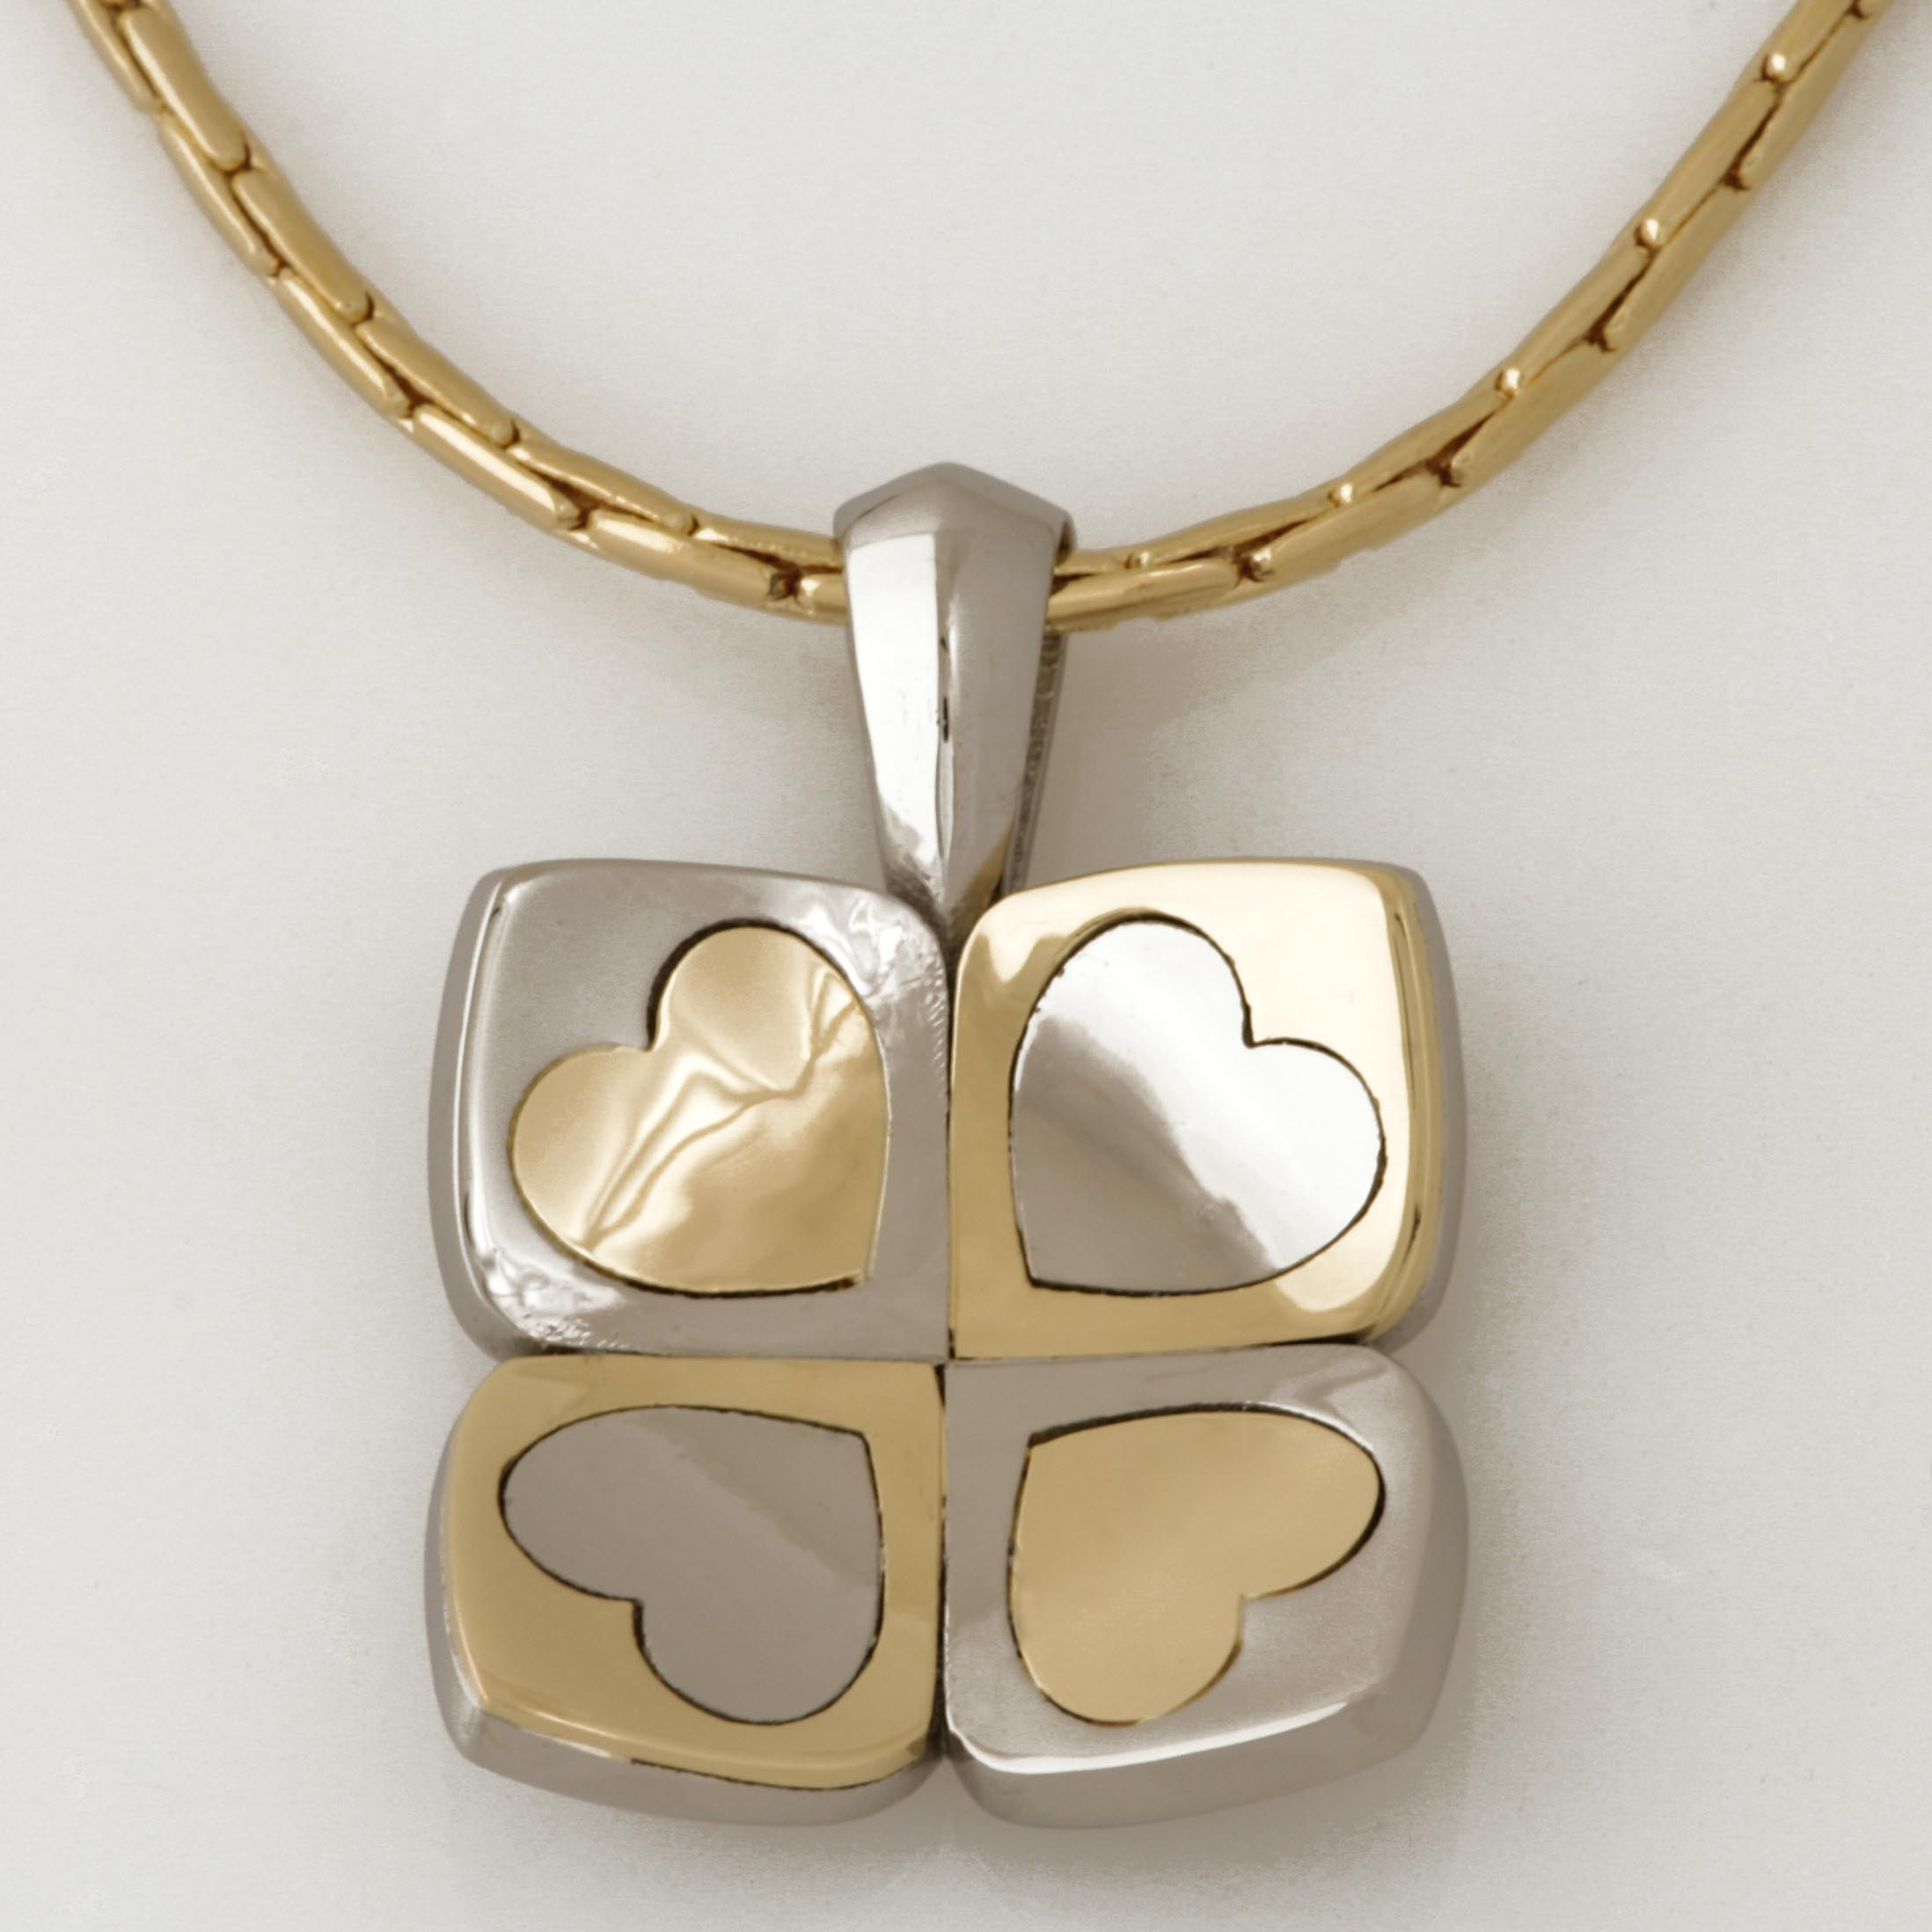 'PLAY' heart pendant made in palladium and 18ct yellow gold